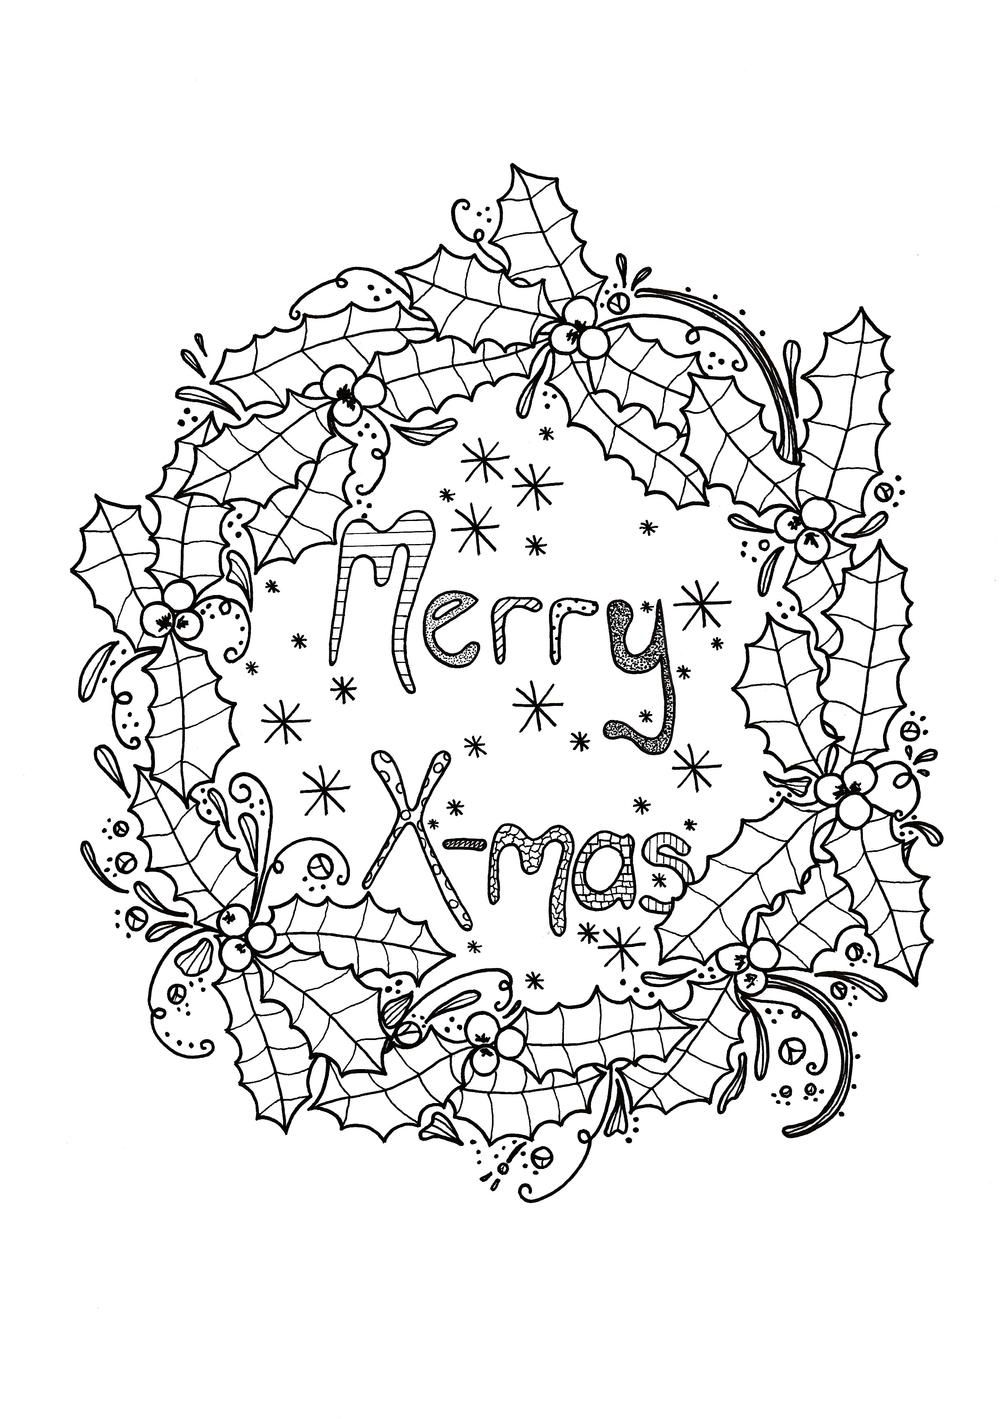 coloring christmas wreath template holly wreath coloring page template coloring christmas wreath